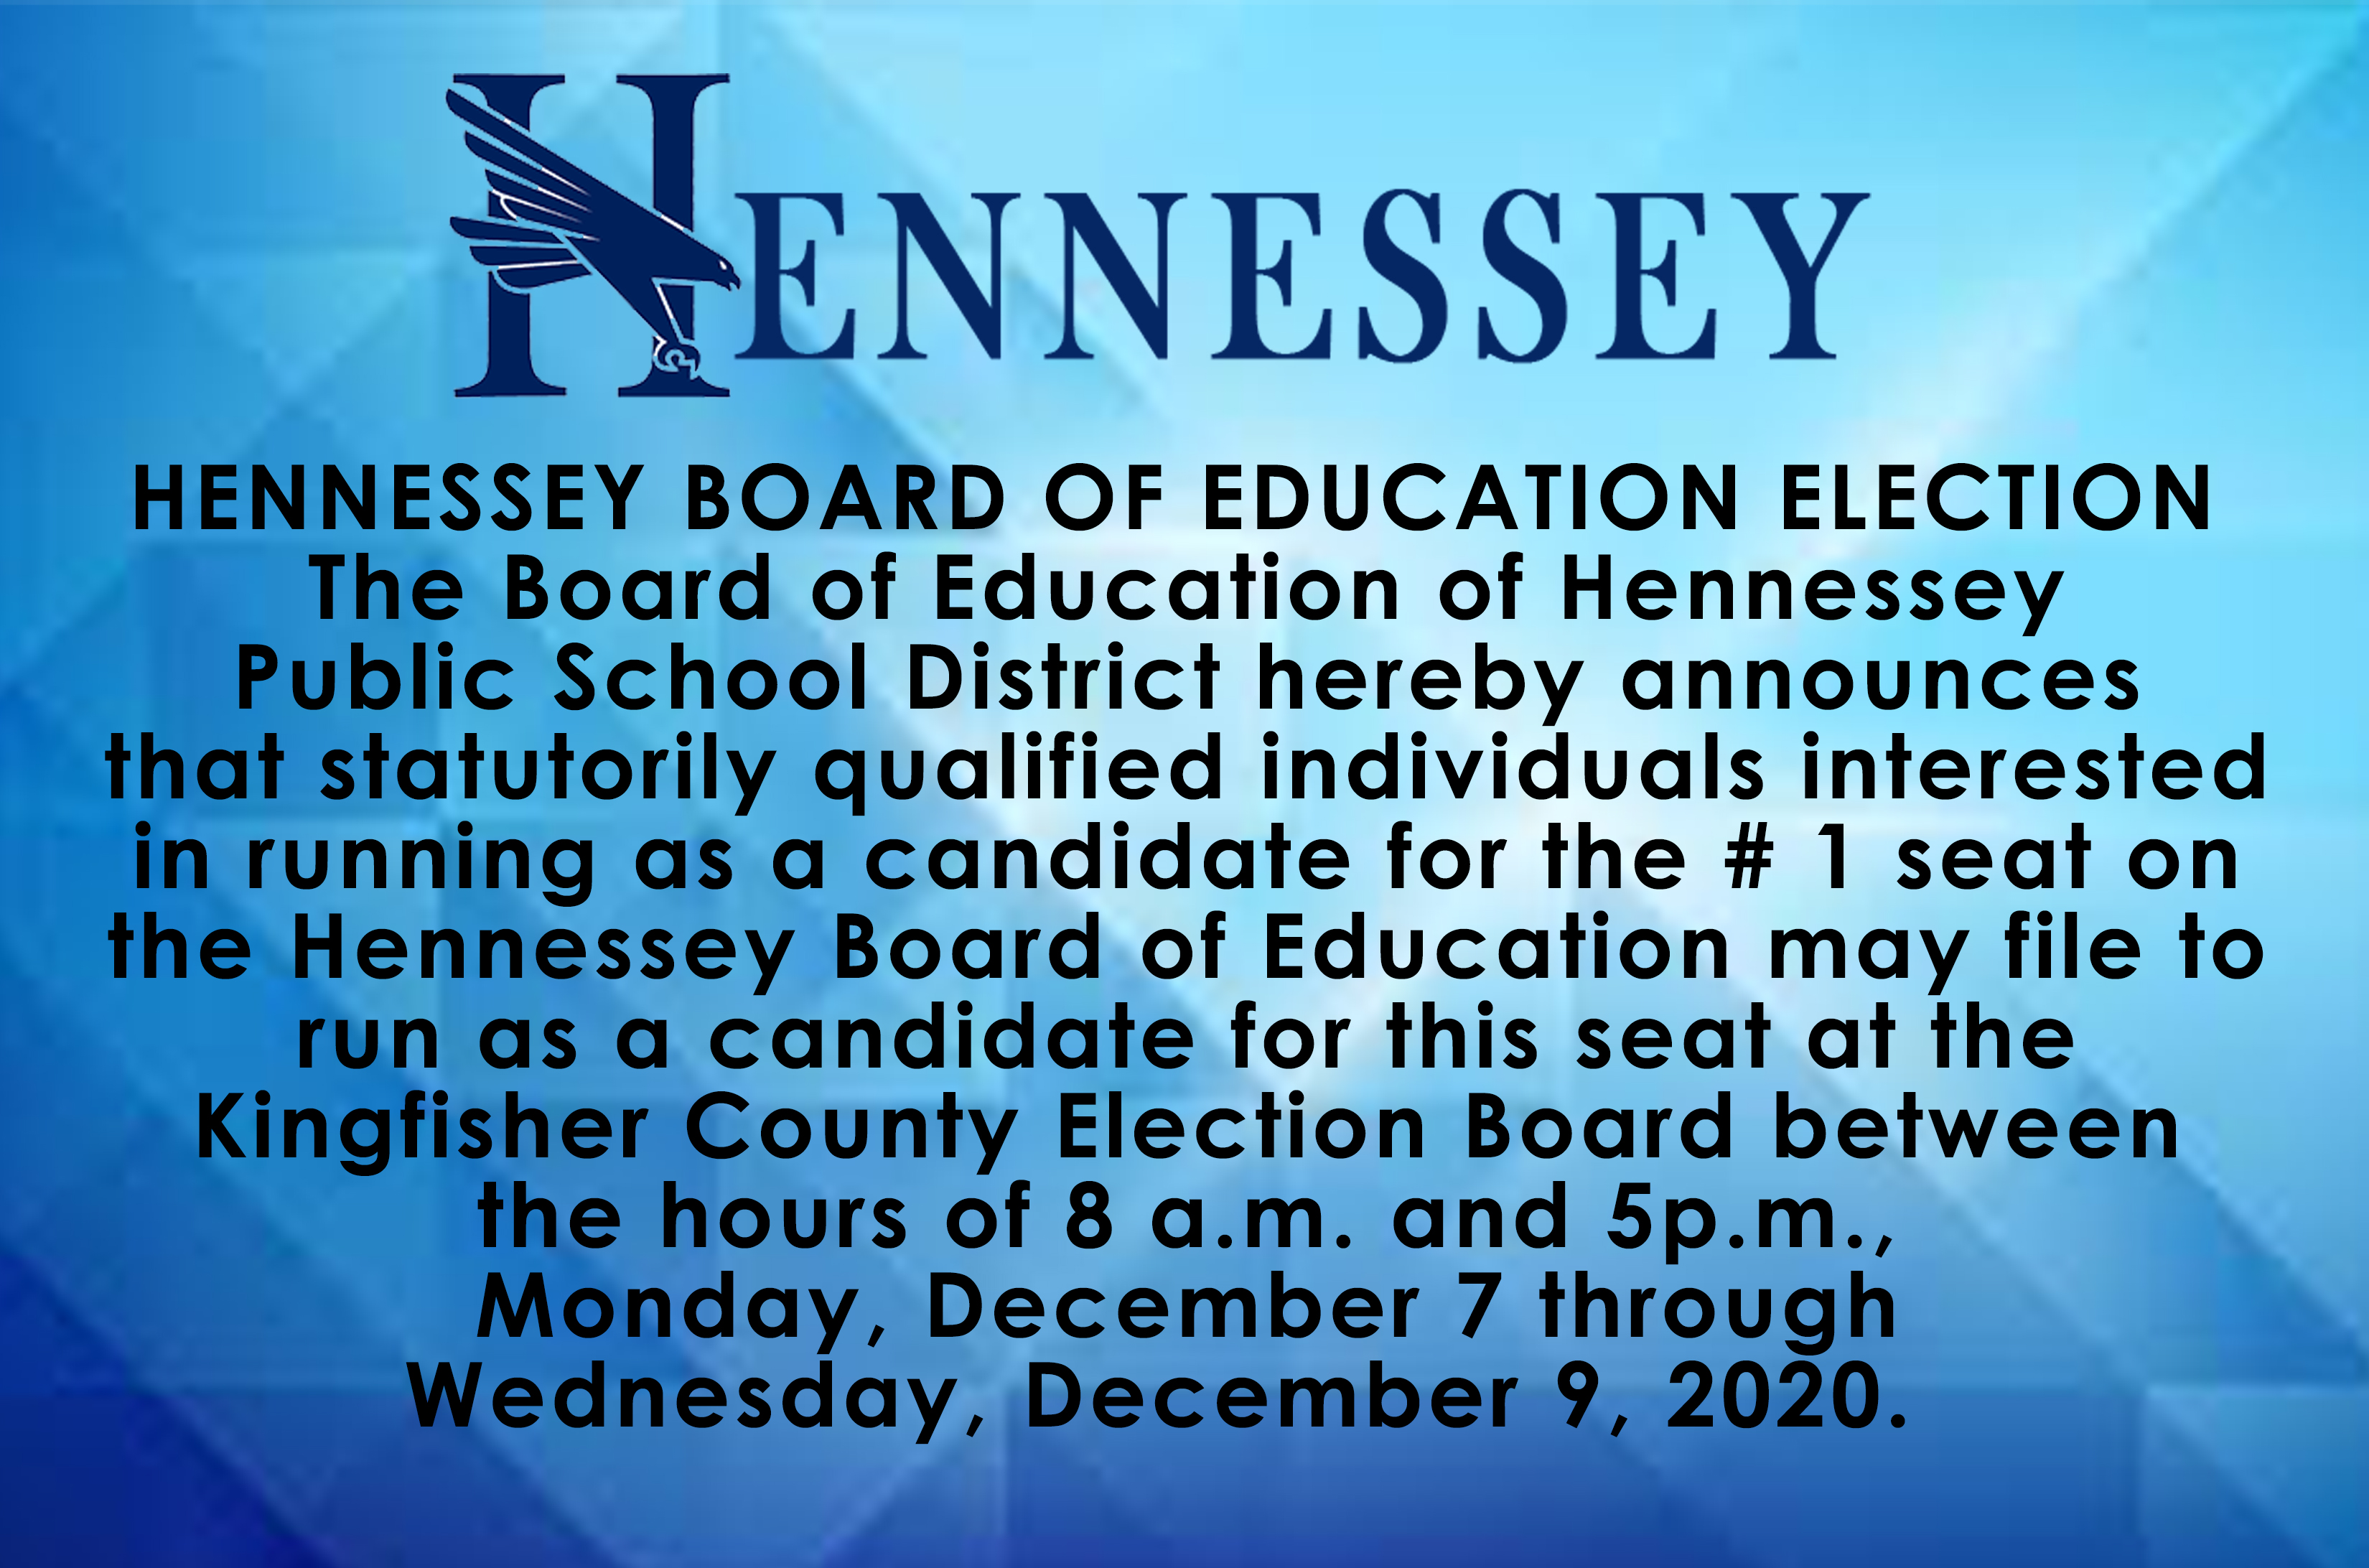 HENNESSEY BOARD OF EDUCATION ELECTION